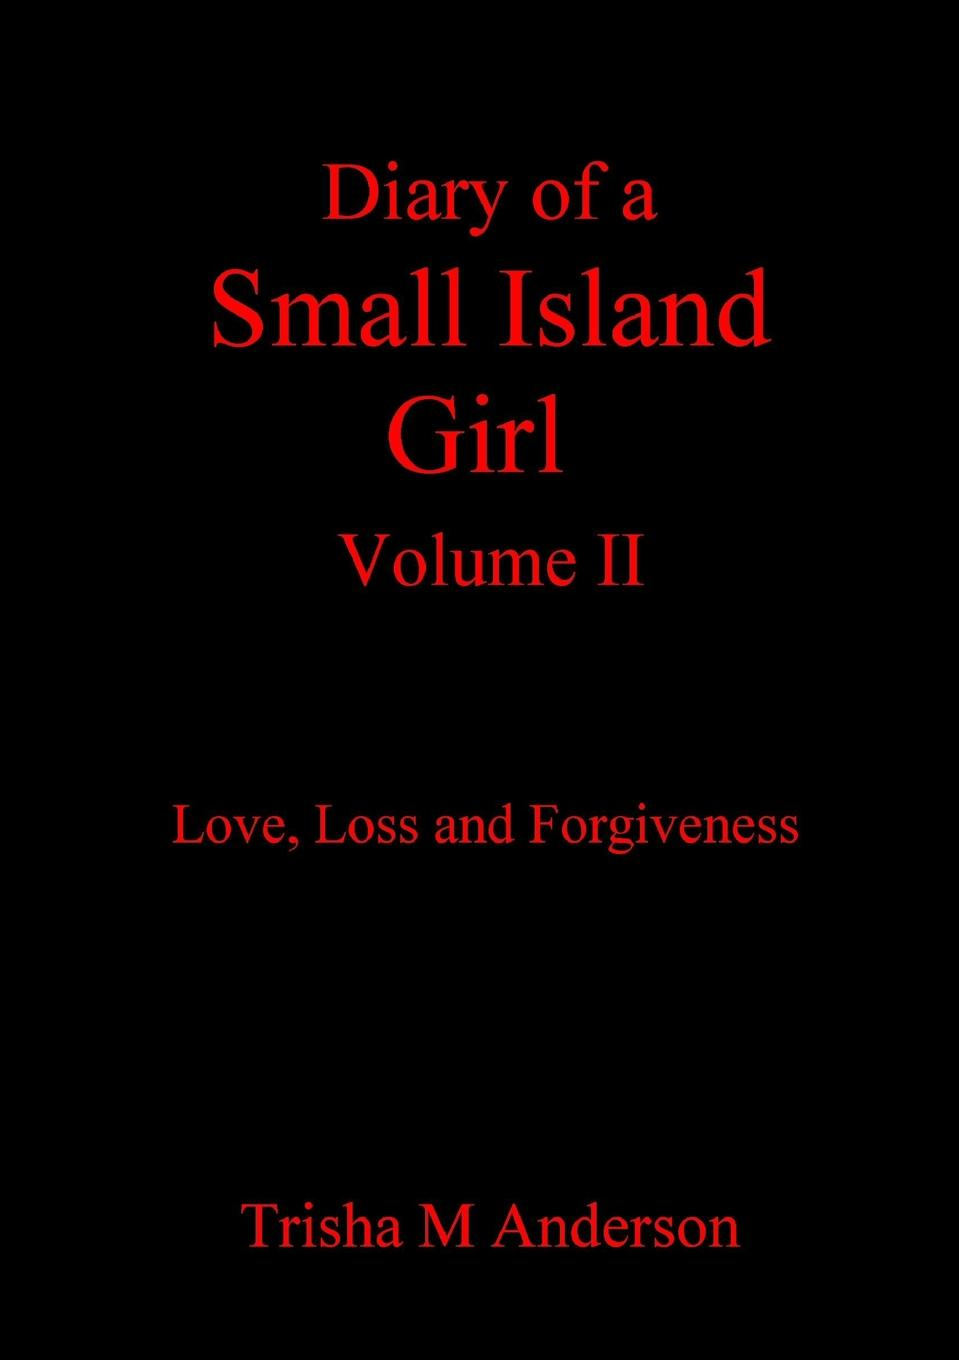 Trisha M Anderson Diary Of A Small Island Girl, Volume II small fresh and simple girl room dreamcatcher hanging decoration